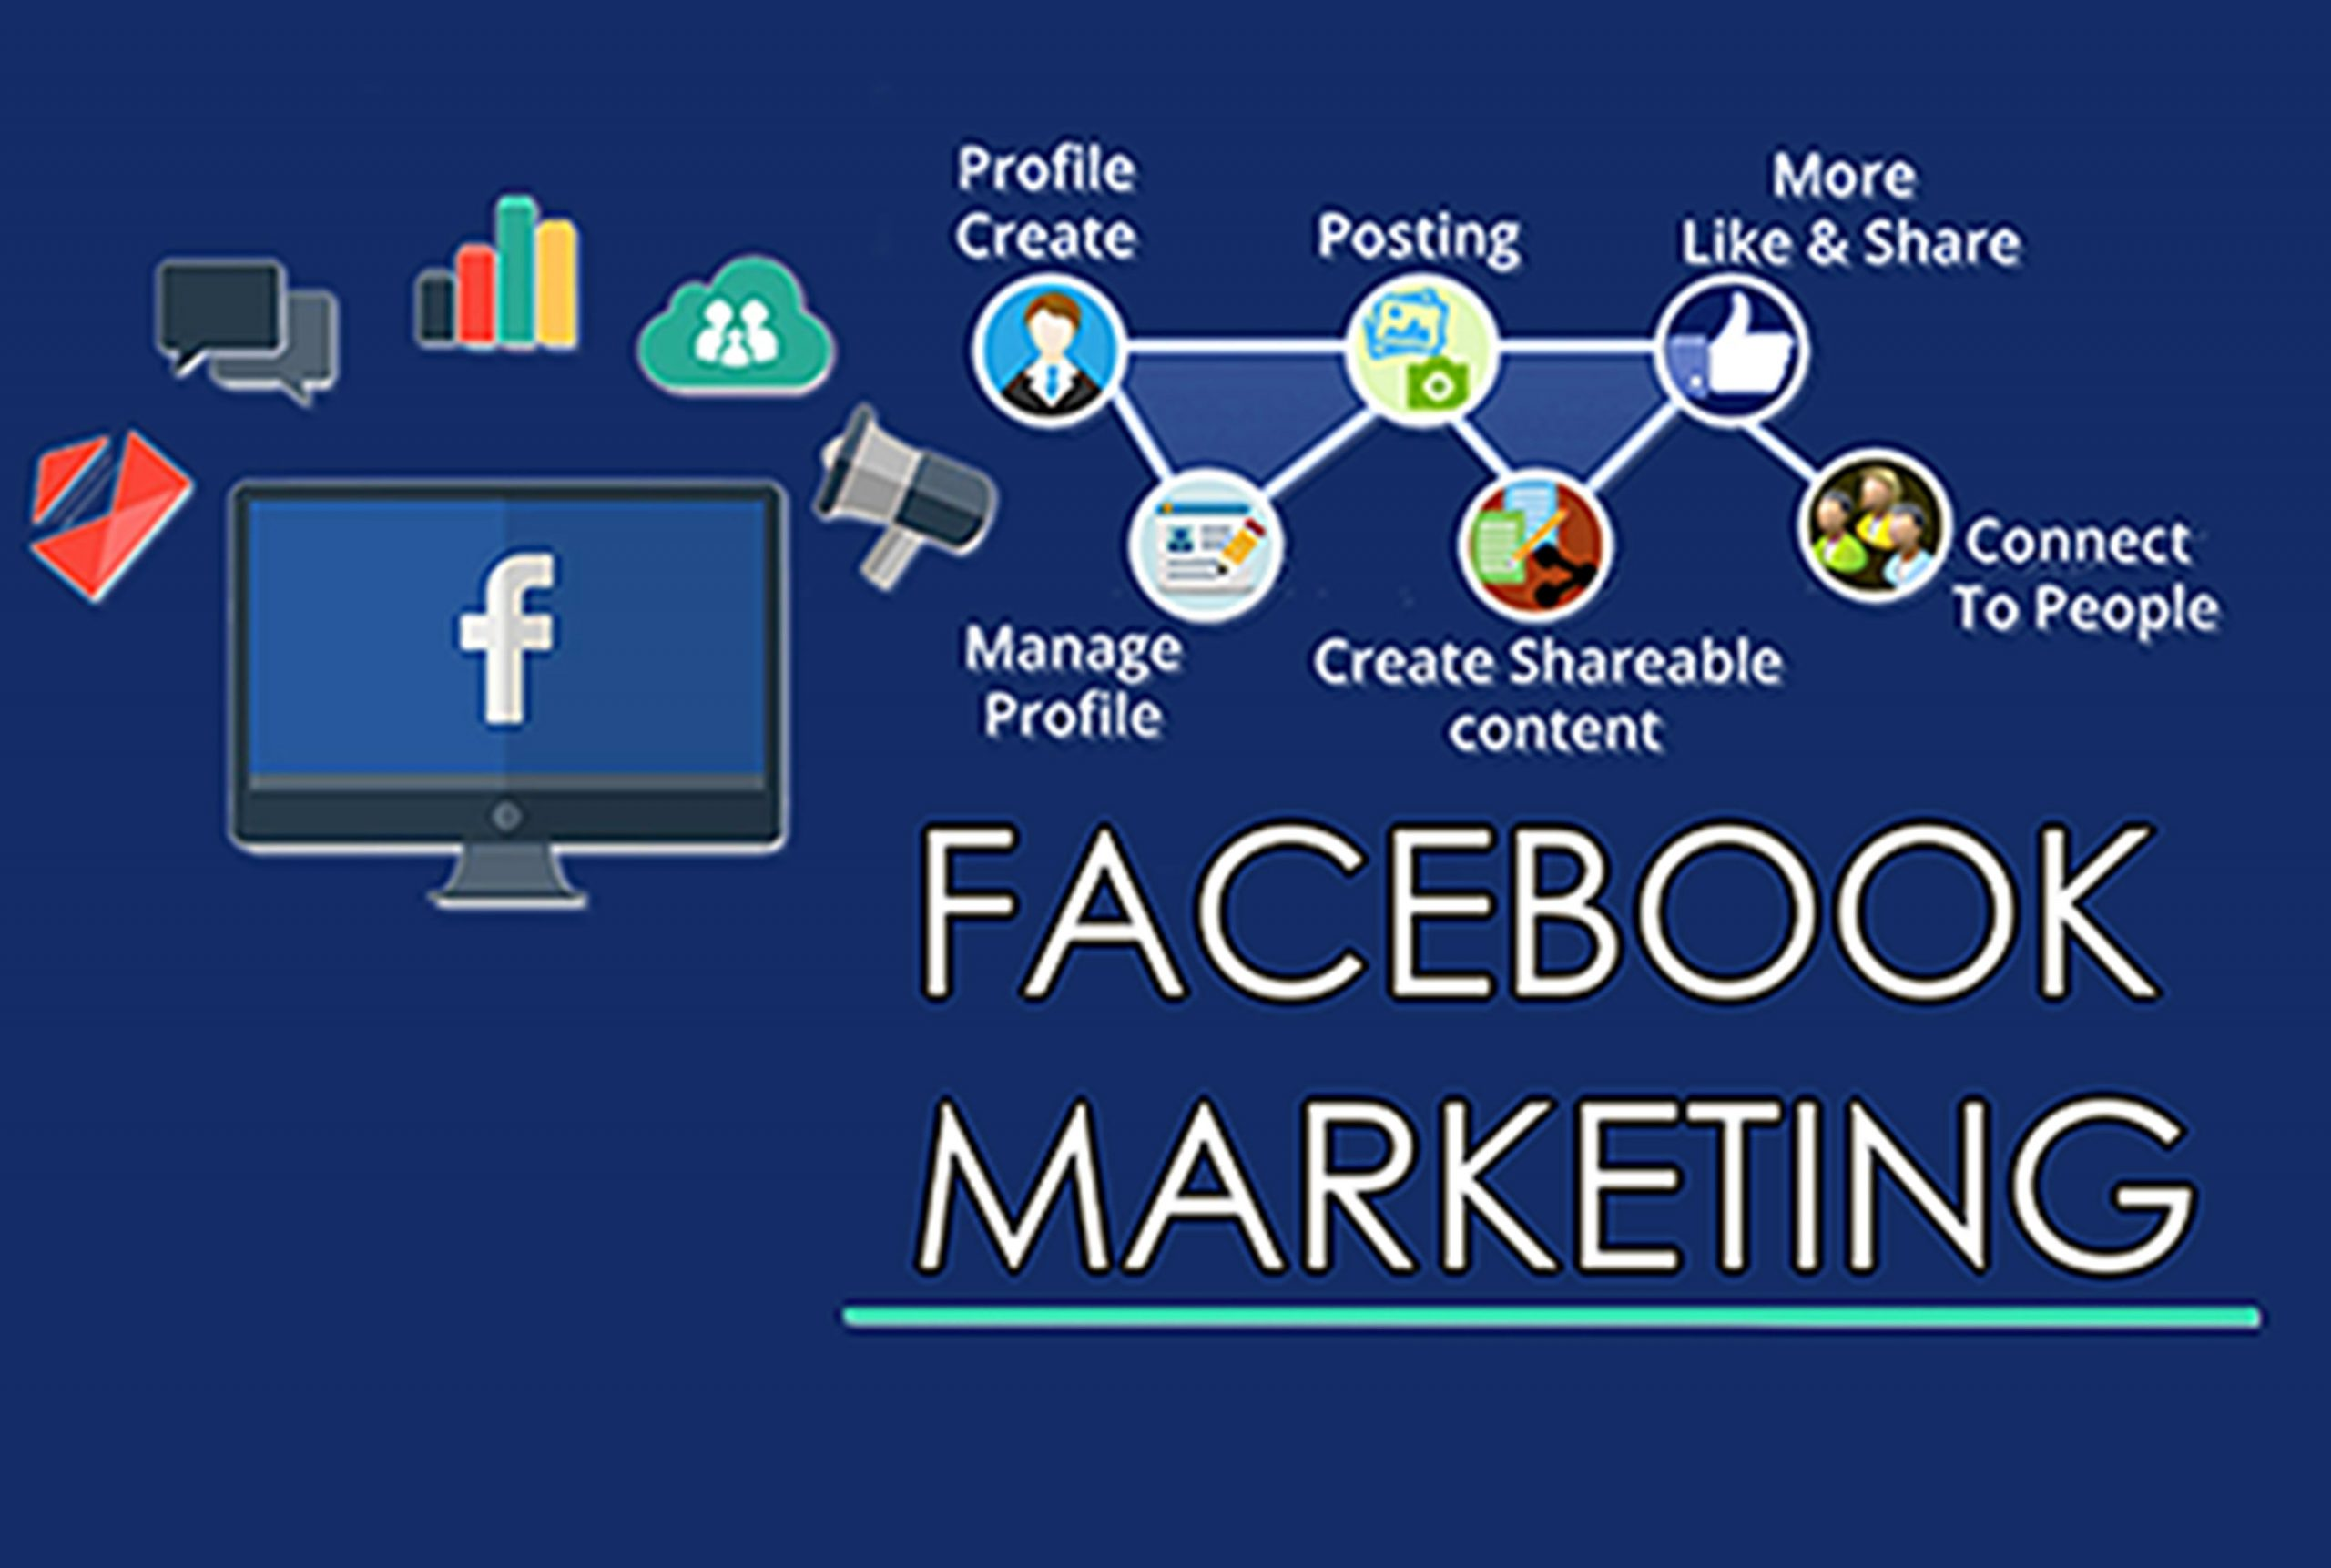 Harness The Power Of Facebook For Your Business With These Marketing Tips